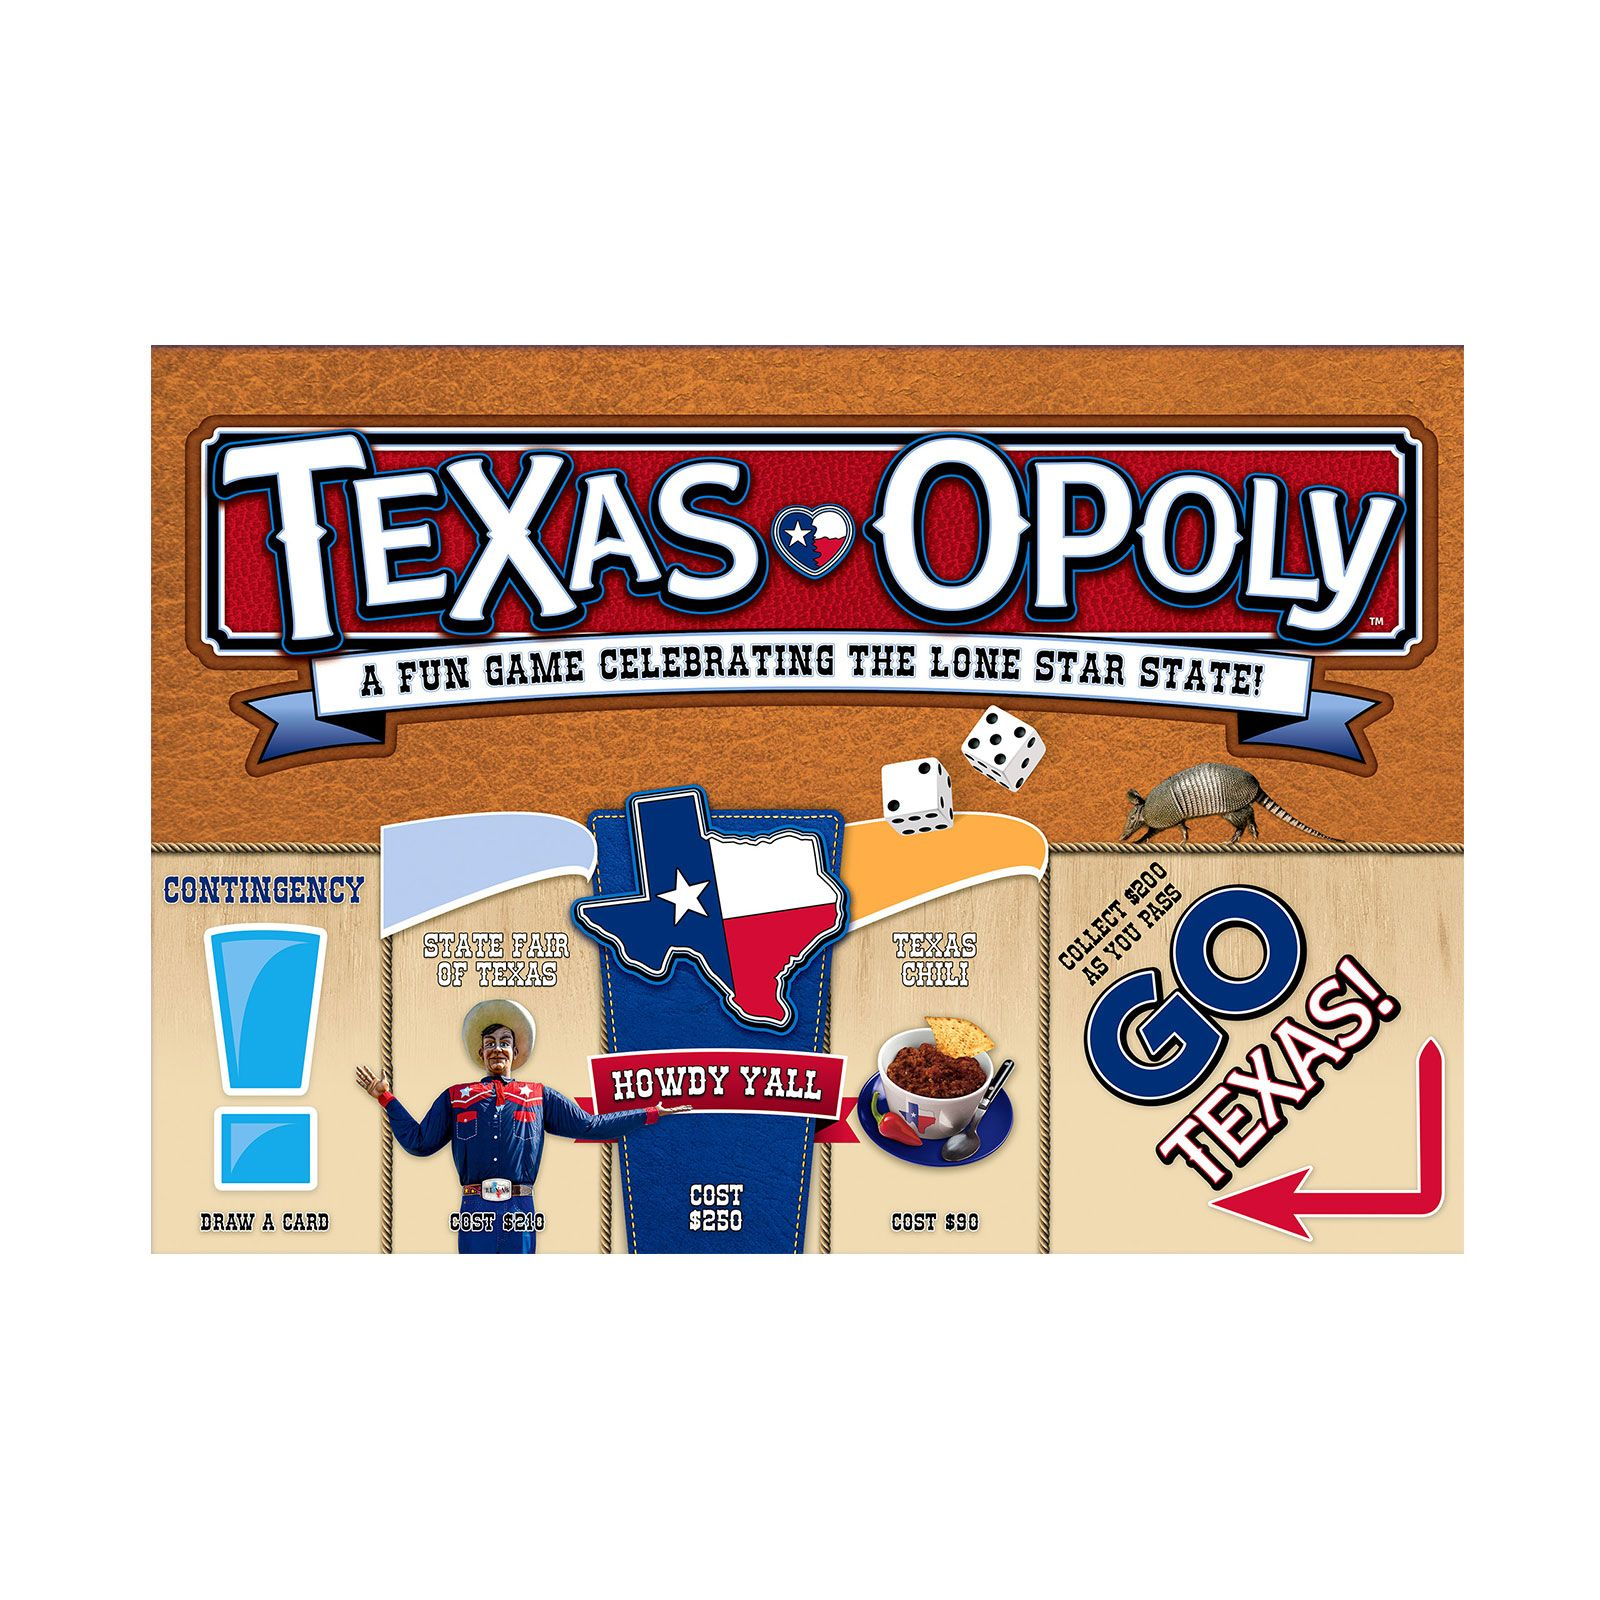 Texas-Opoly Board Game